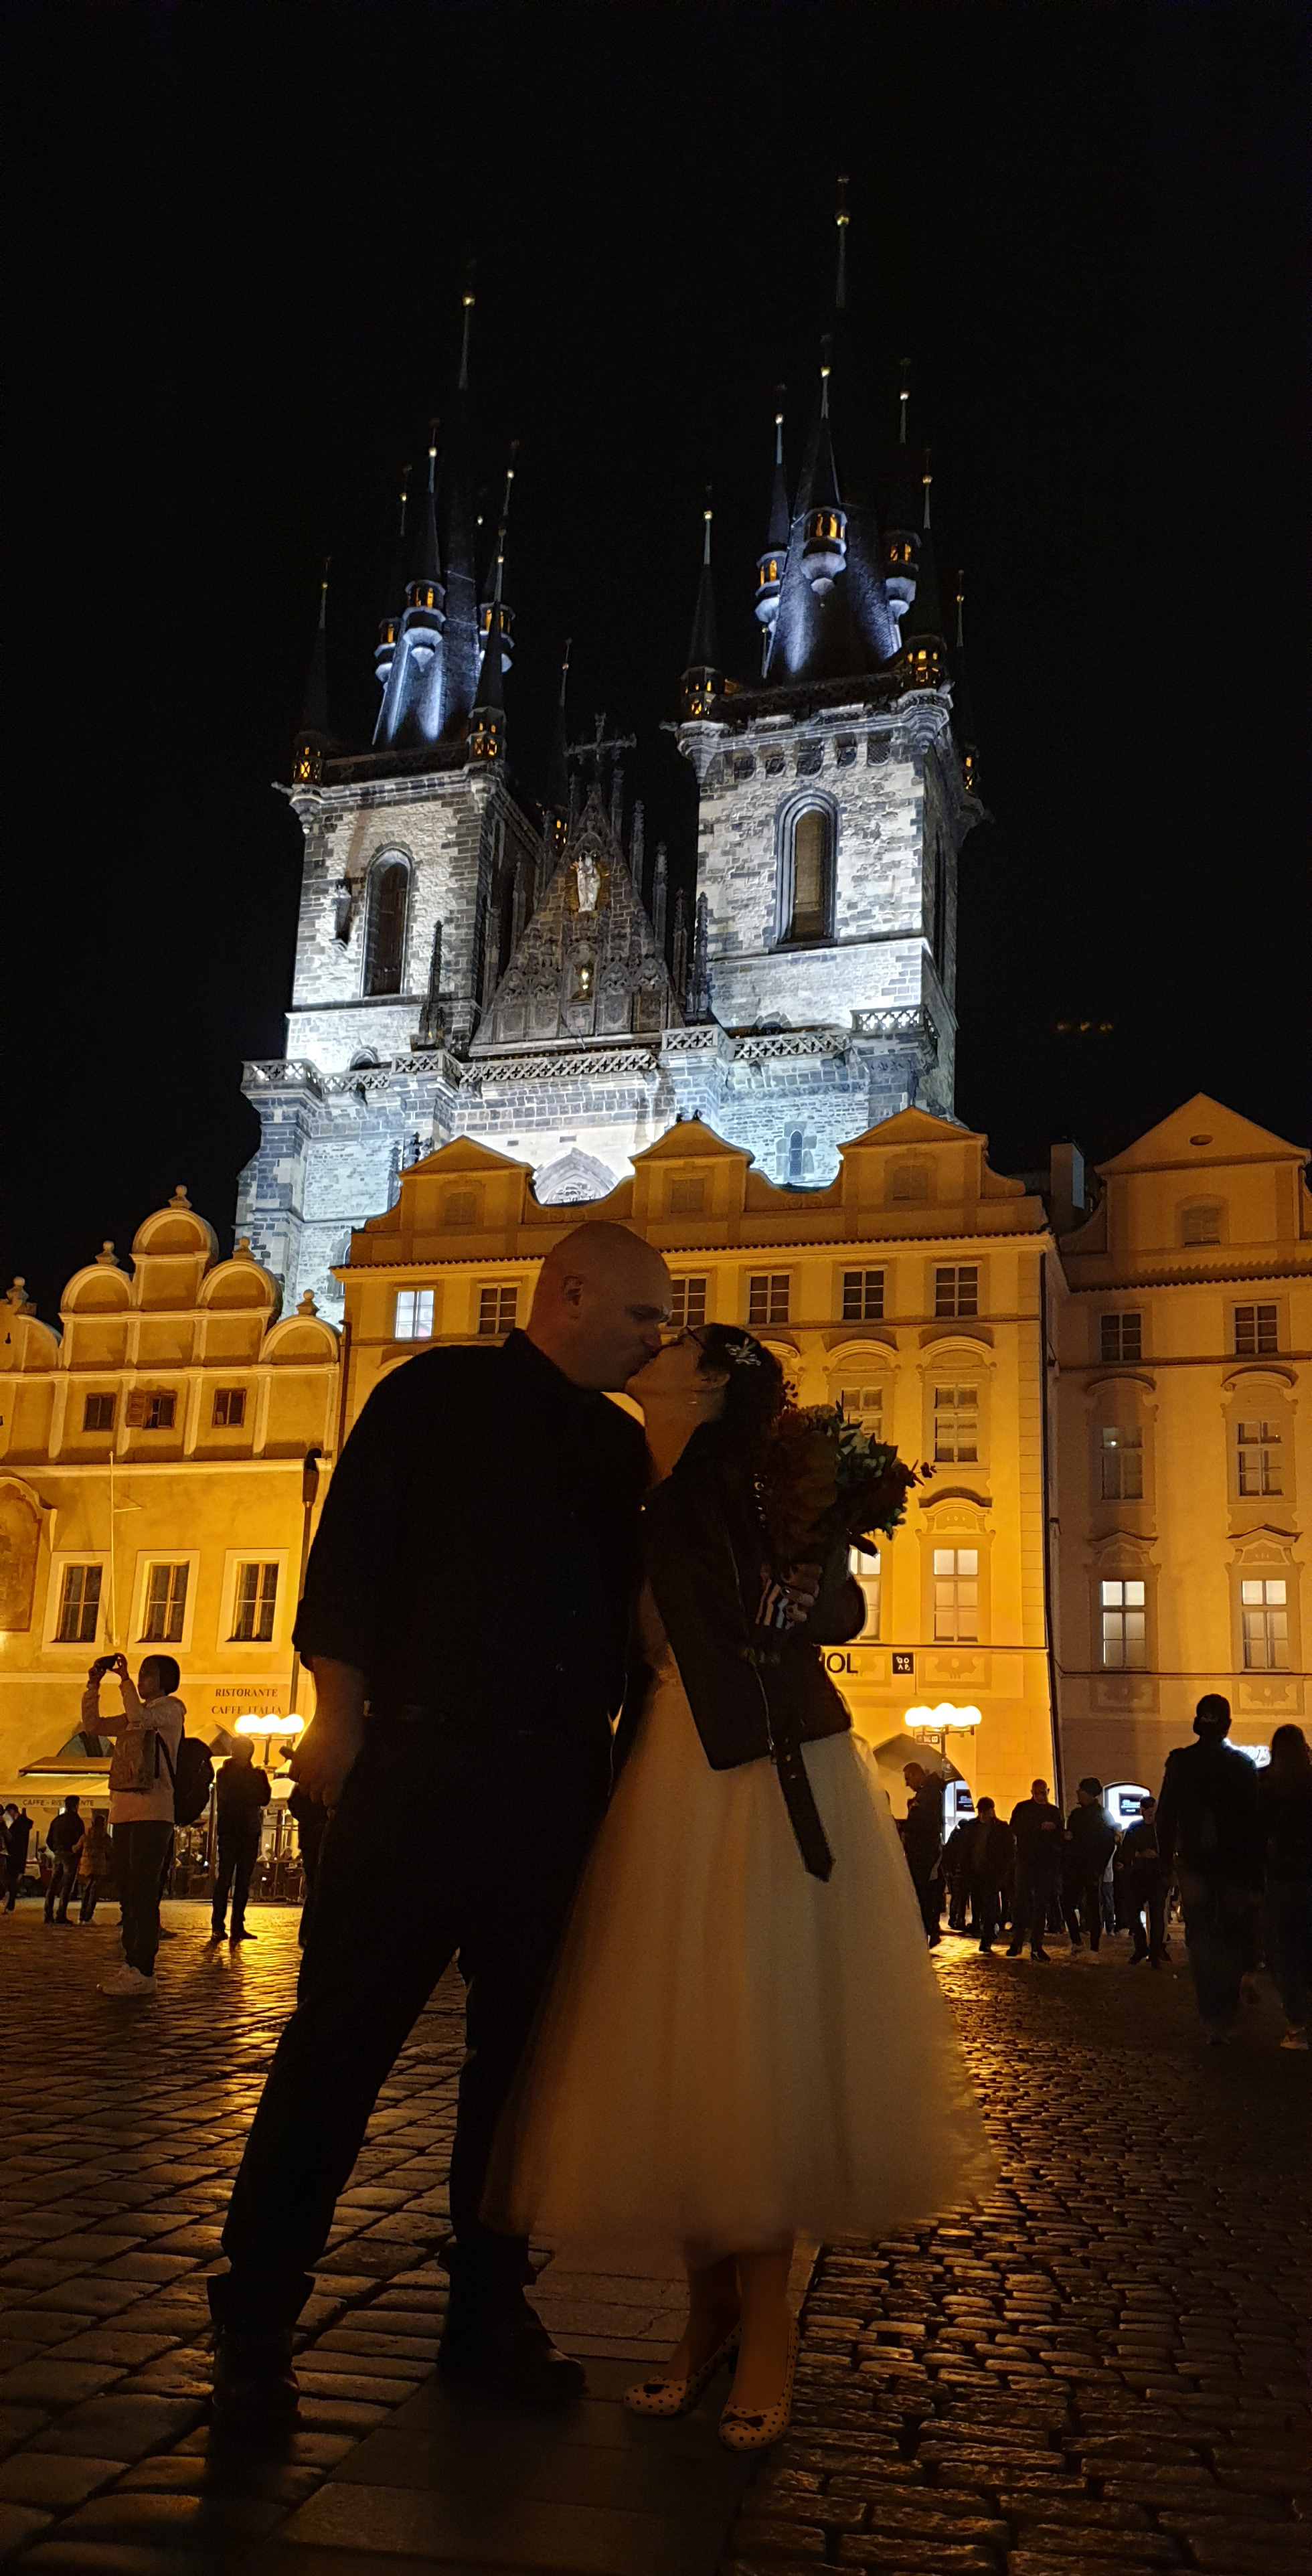 Old Town Square at night with bride and groom